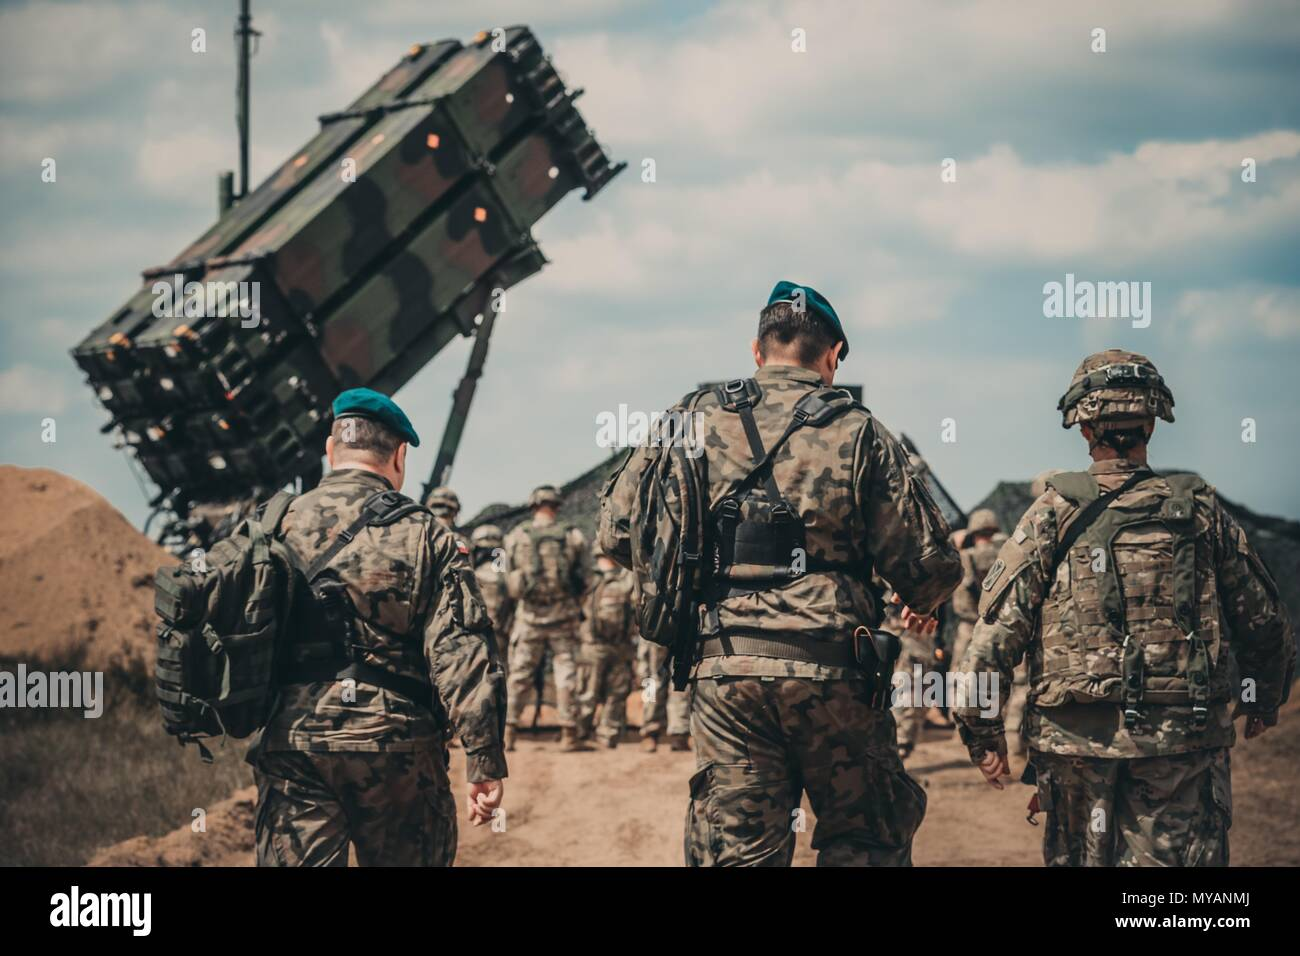 Service members from the U.S. Army and the Polish Land Forces walk to the site of the new Patriot missile system for a verbal demonstration of its operation and capabilities near Drawsko Pomorskie, Poland, June 4, 2018, June 4, 2018. Demonstrations and instructions such as these act as a show of force to our allies which instills confidence and dedication to service. (Michigan Army National Guard photo by Spc. Aaron Good/Released). () - Stock Image